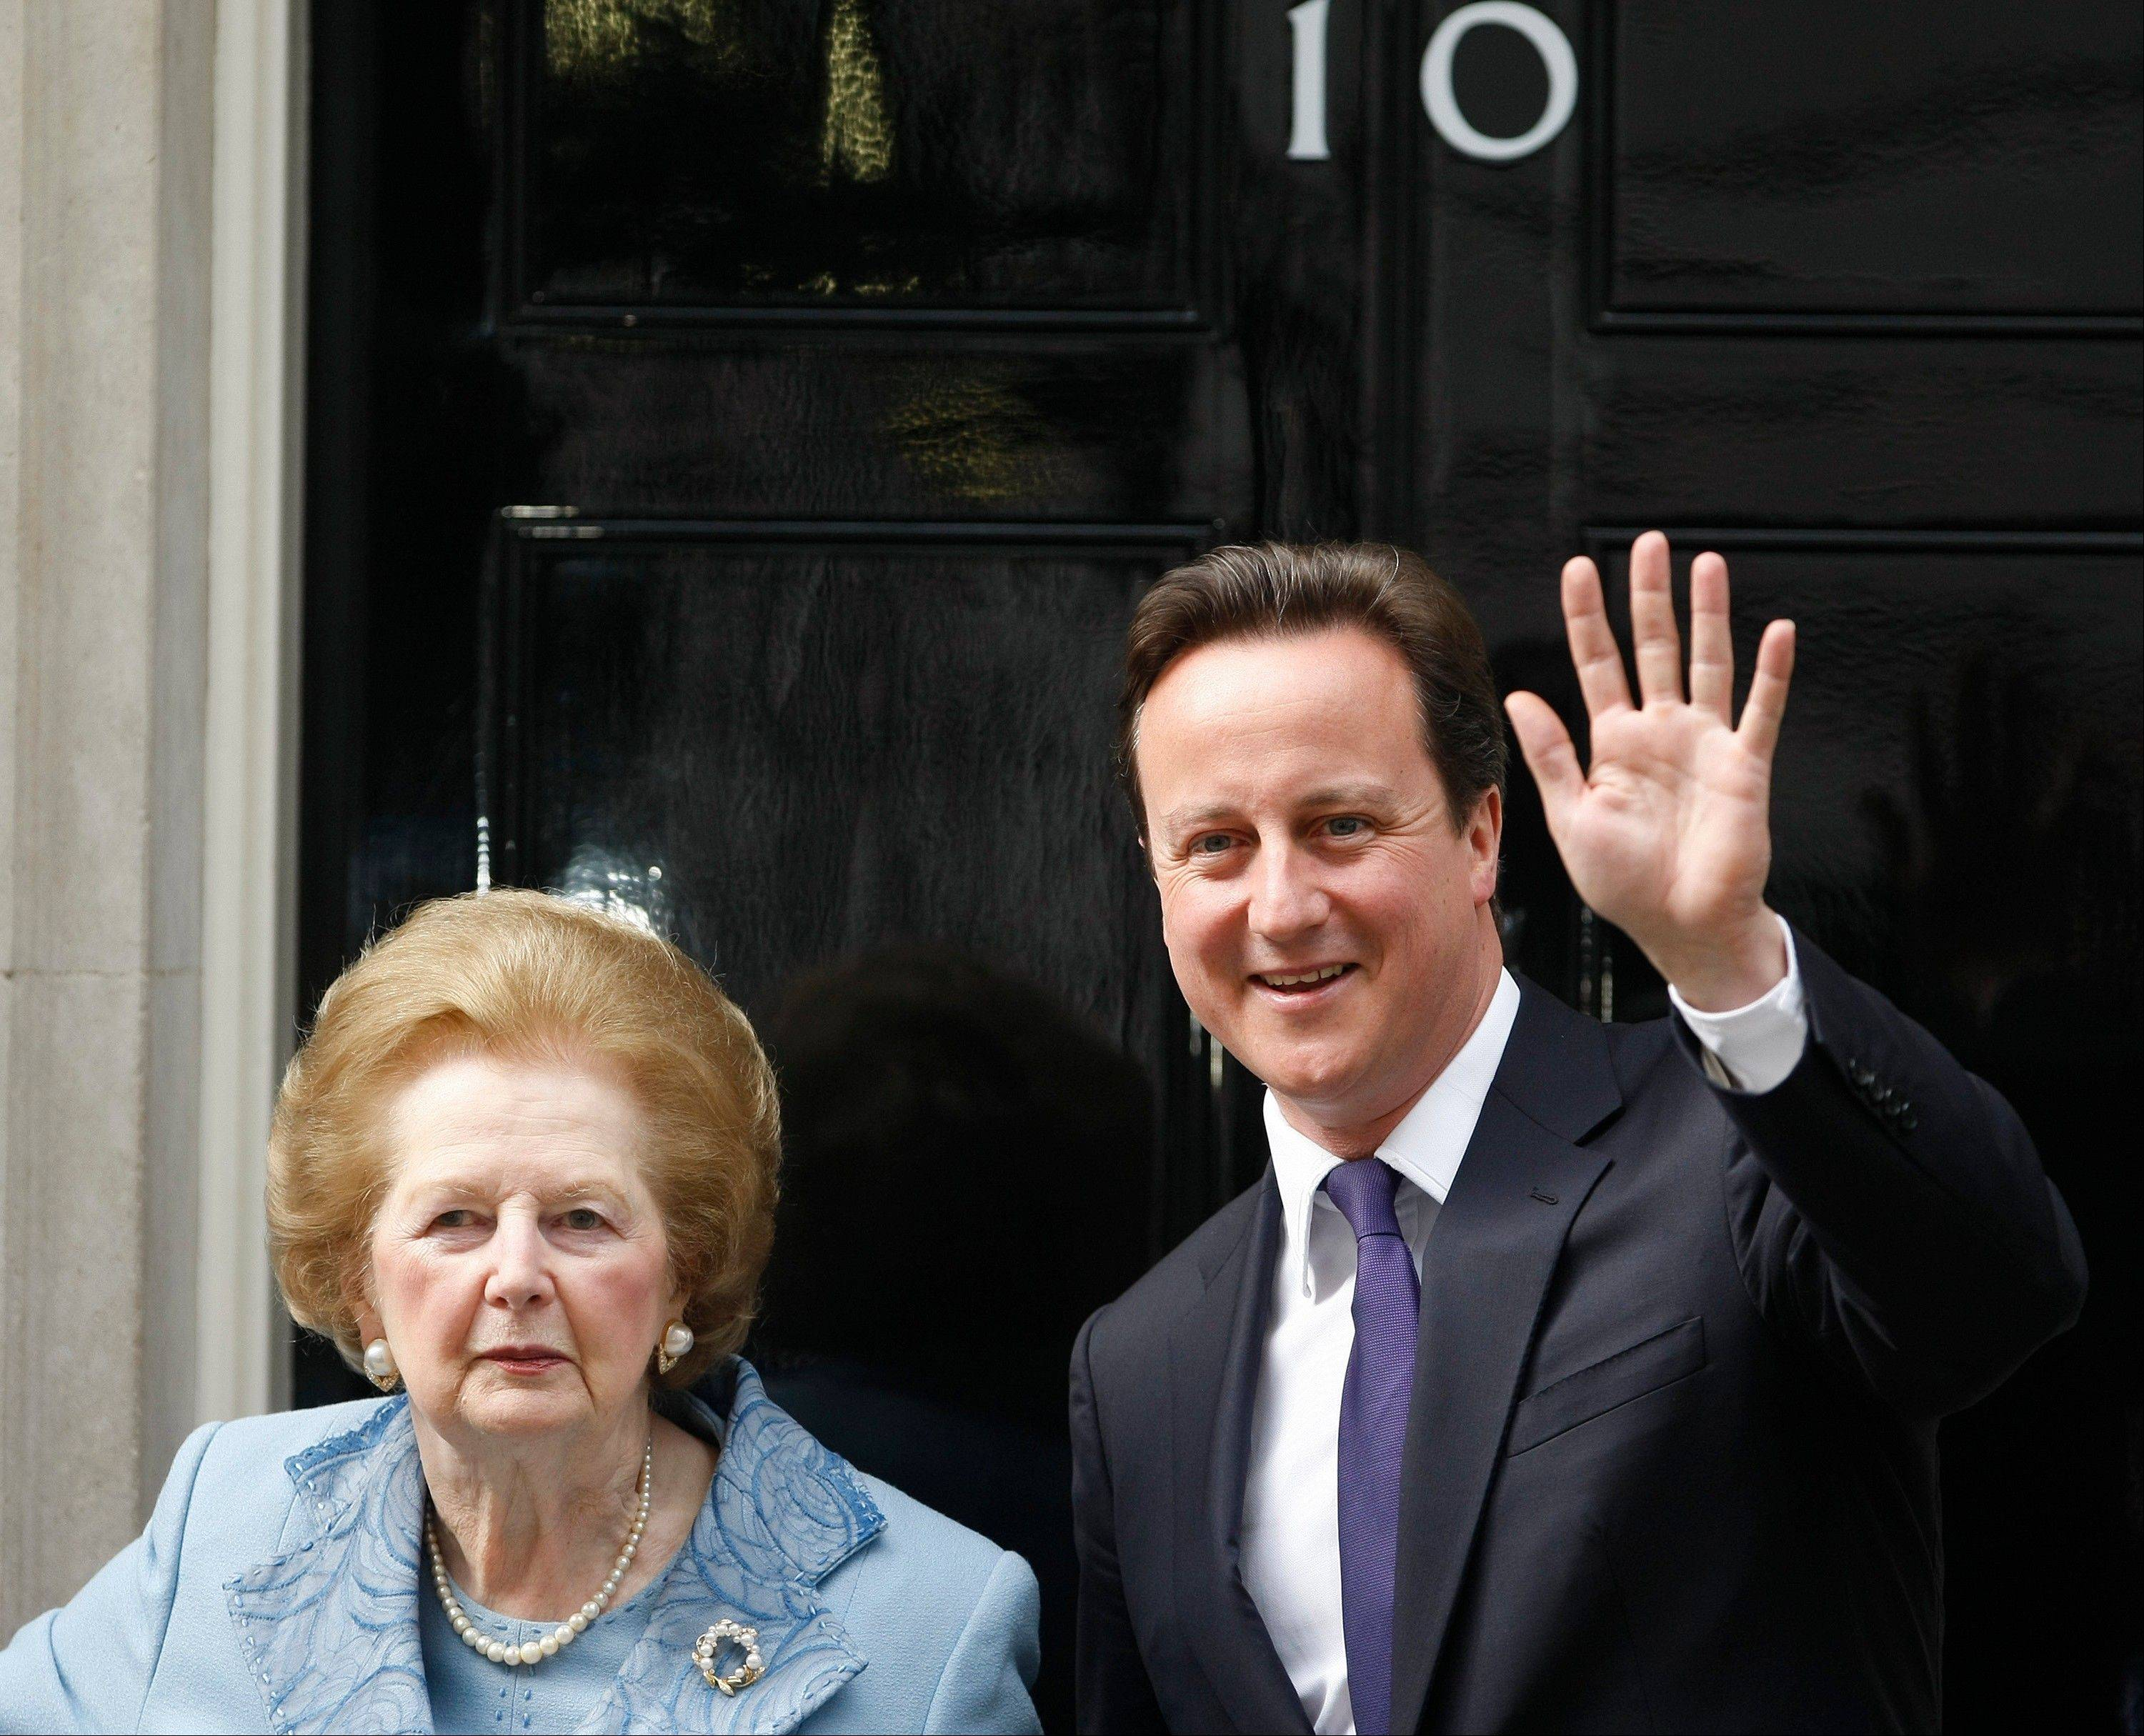 This is a Tuesday, June, 8, 2010 file photo of Britian's Prime Minister David Cameron with former Prime Minister Margaret Thatcher on the doorstep of 10 Downing Street in London.